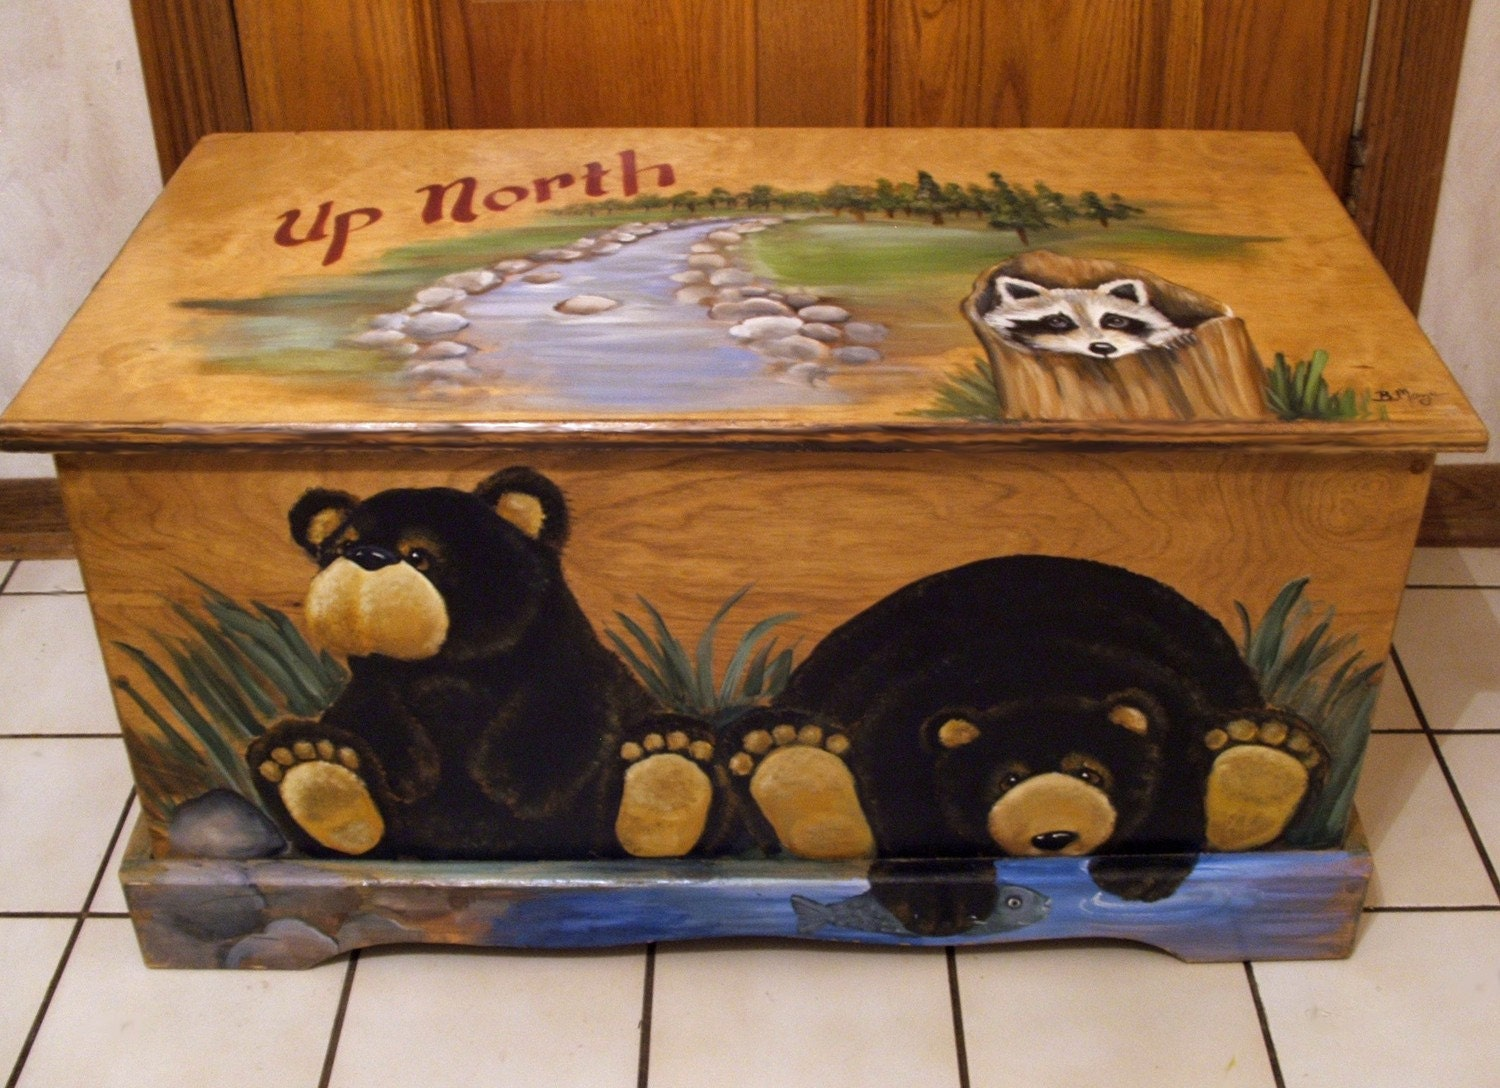 Best Toy Boxes And Chests For Kids : Up north black bear toy box kids furniture wooden chest